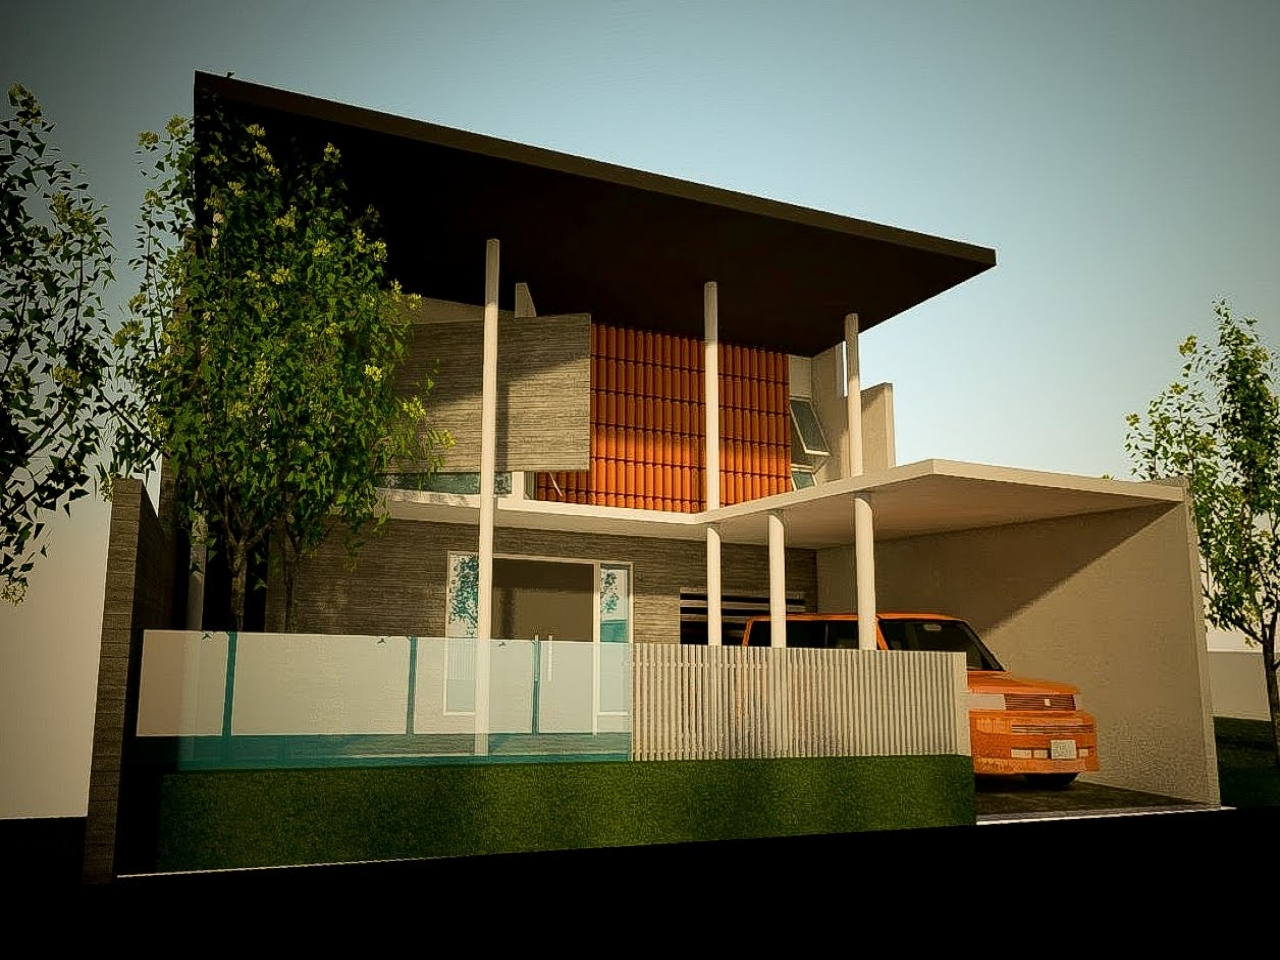 Modern minimalist house design modern minimalist house for Minimalist house blueprints